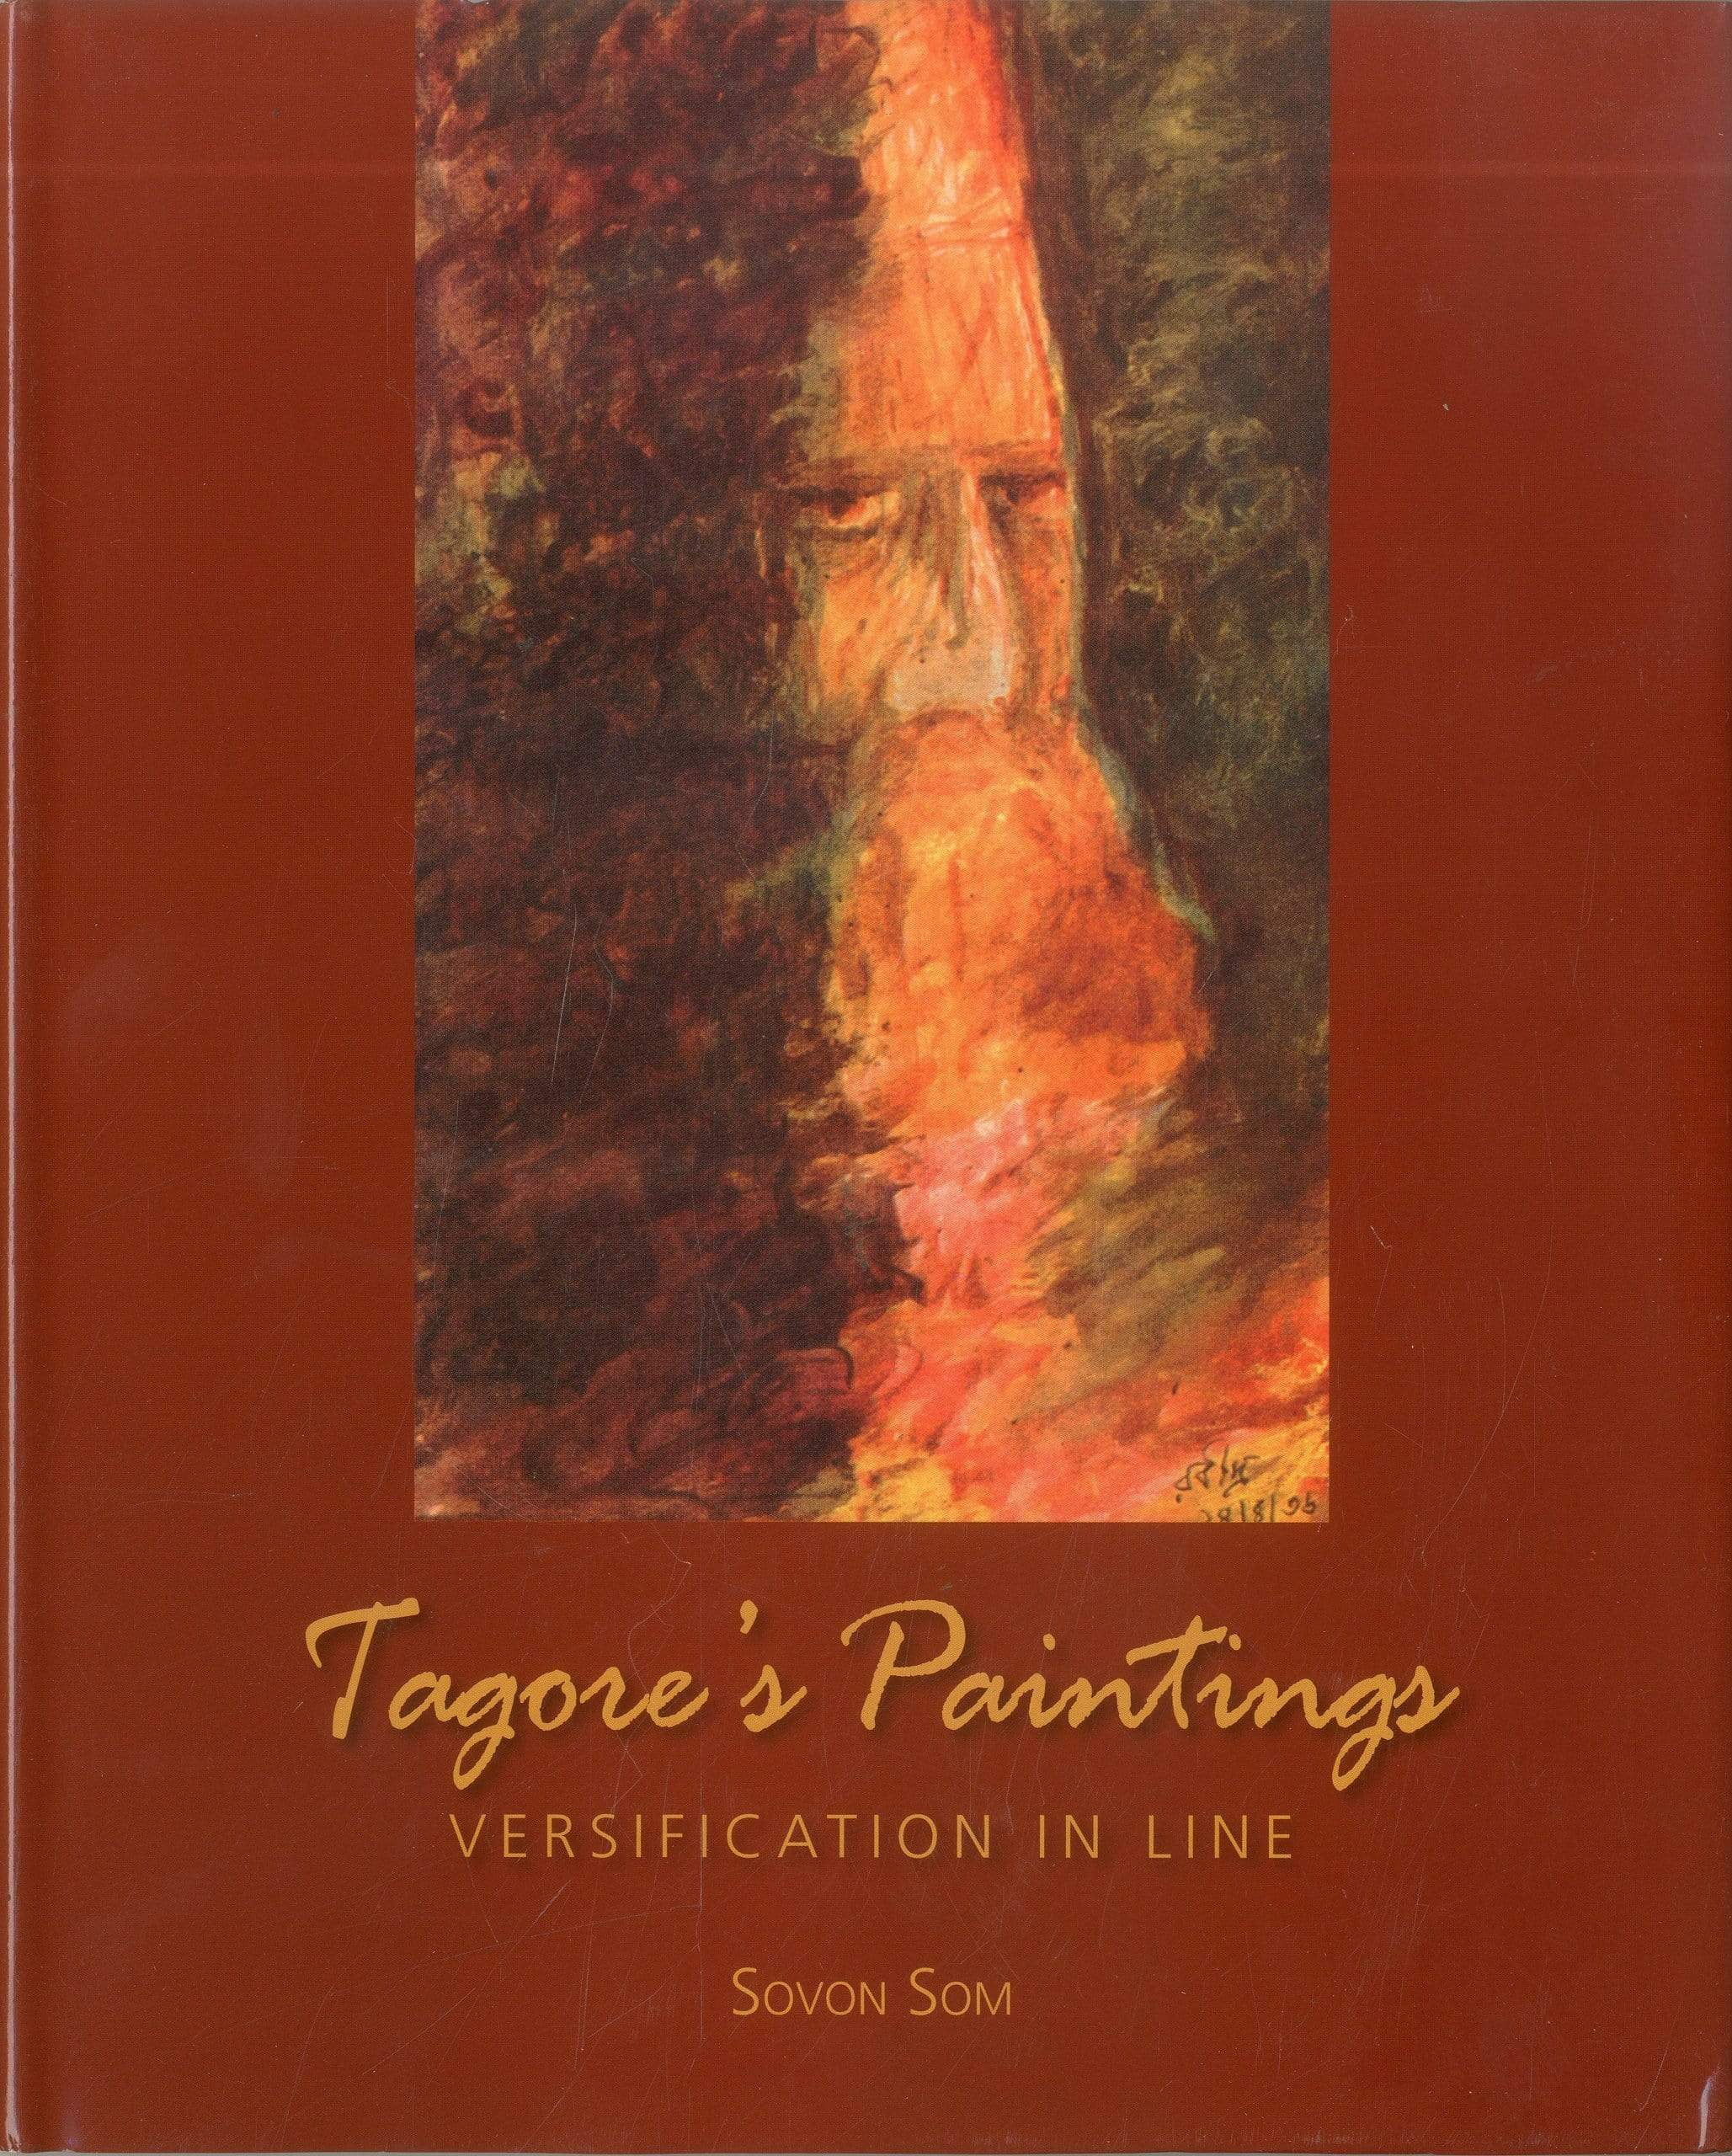 Tagore's Paintings: Versification in Line